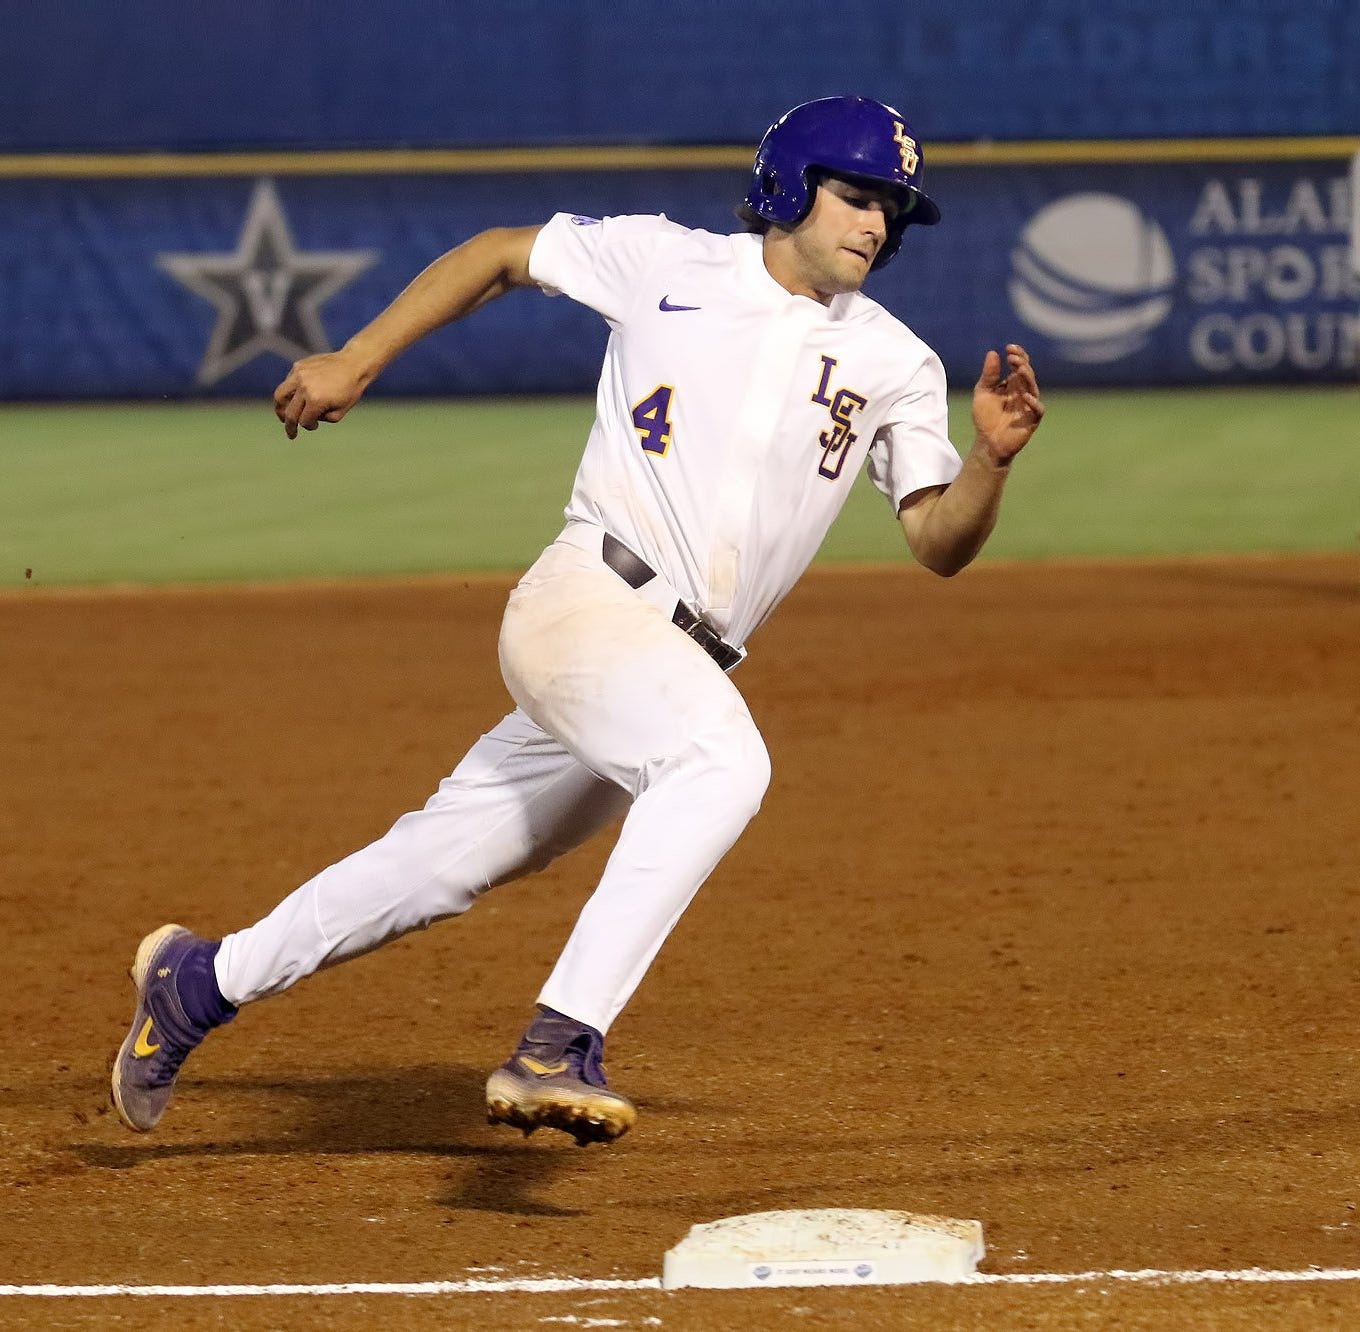 SEC Baseball Tournament 2019: LSU vs. Mississippi State video highlights, score